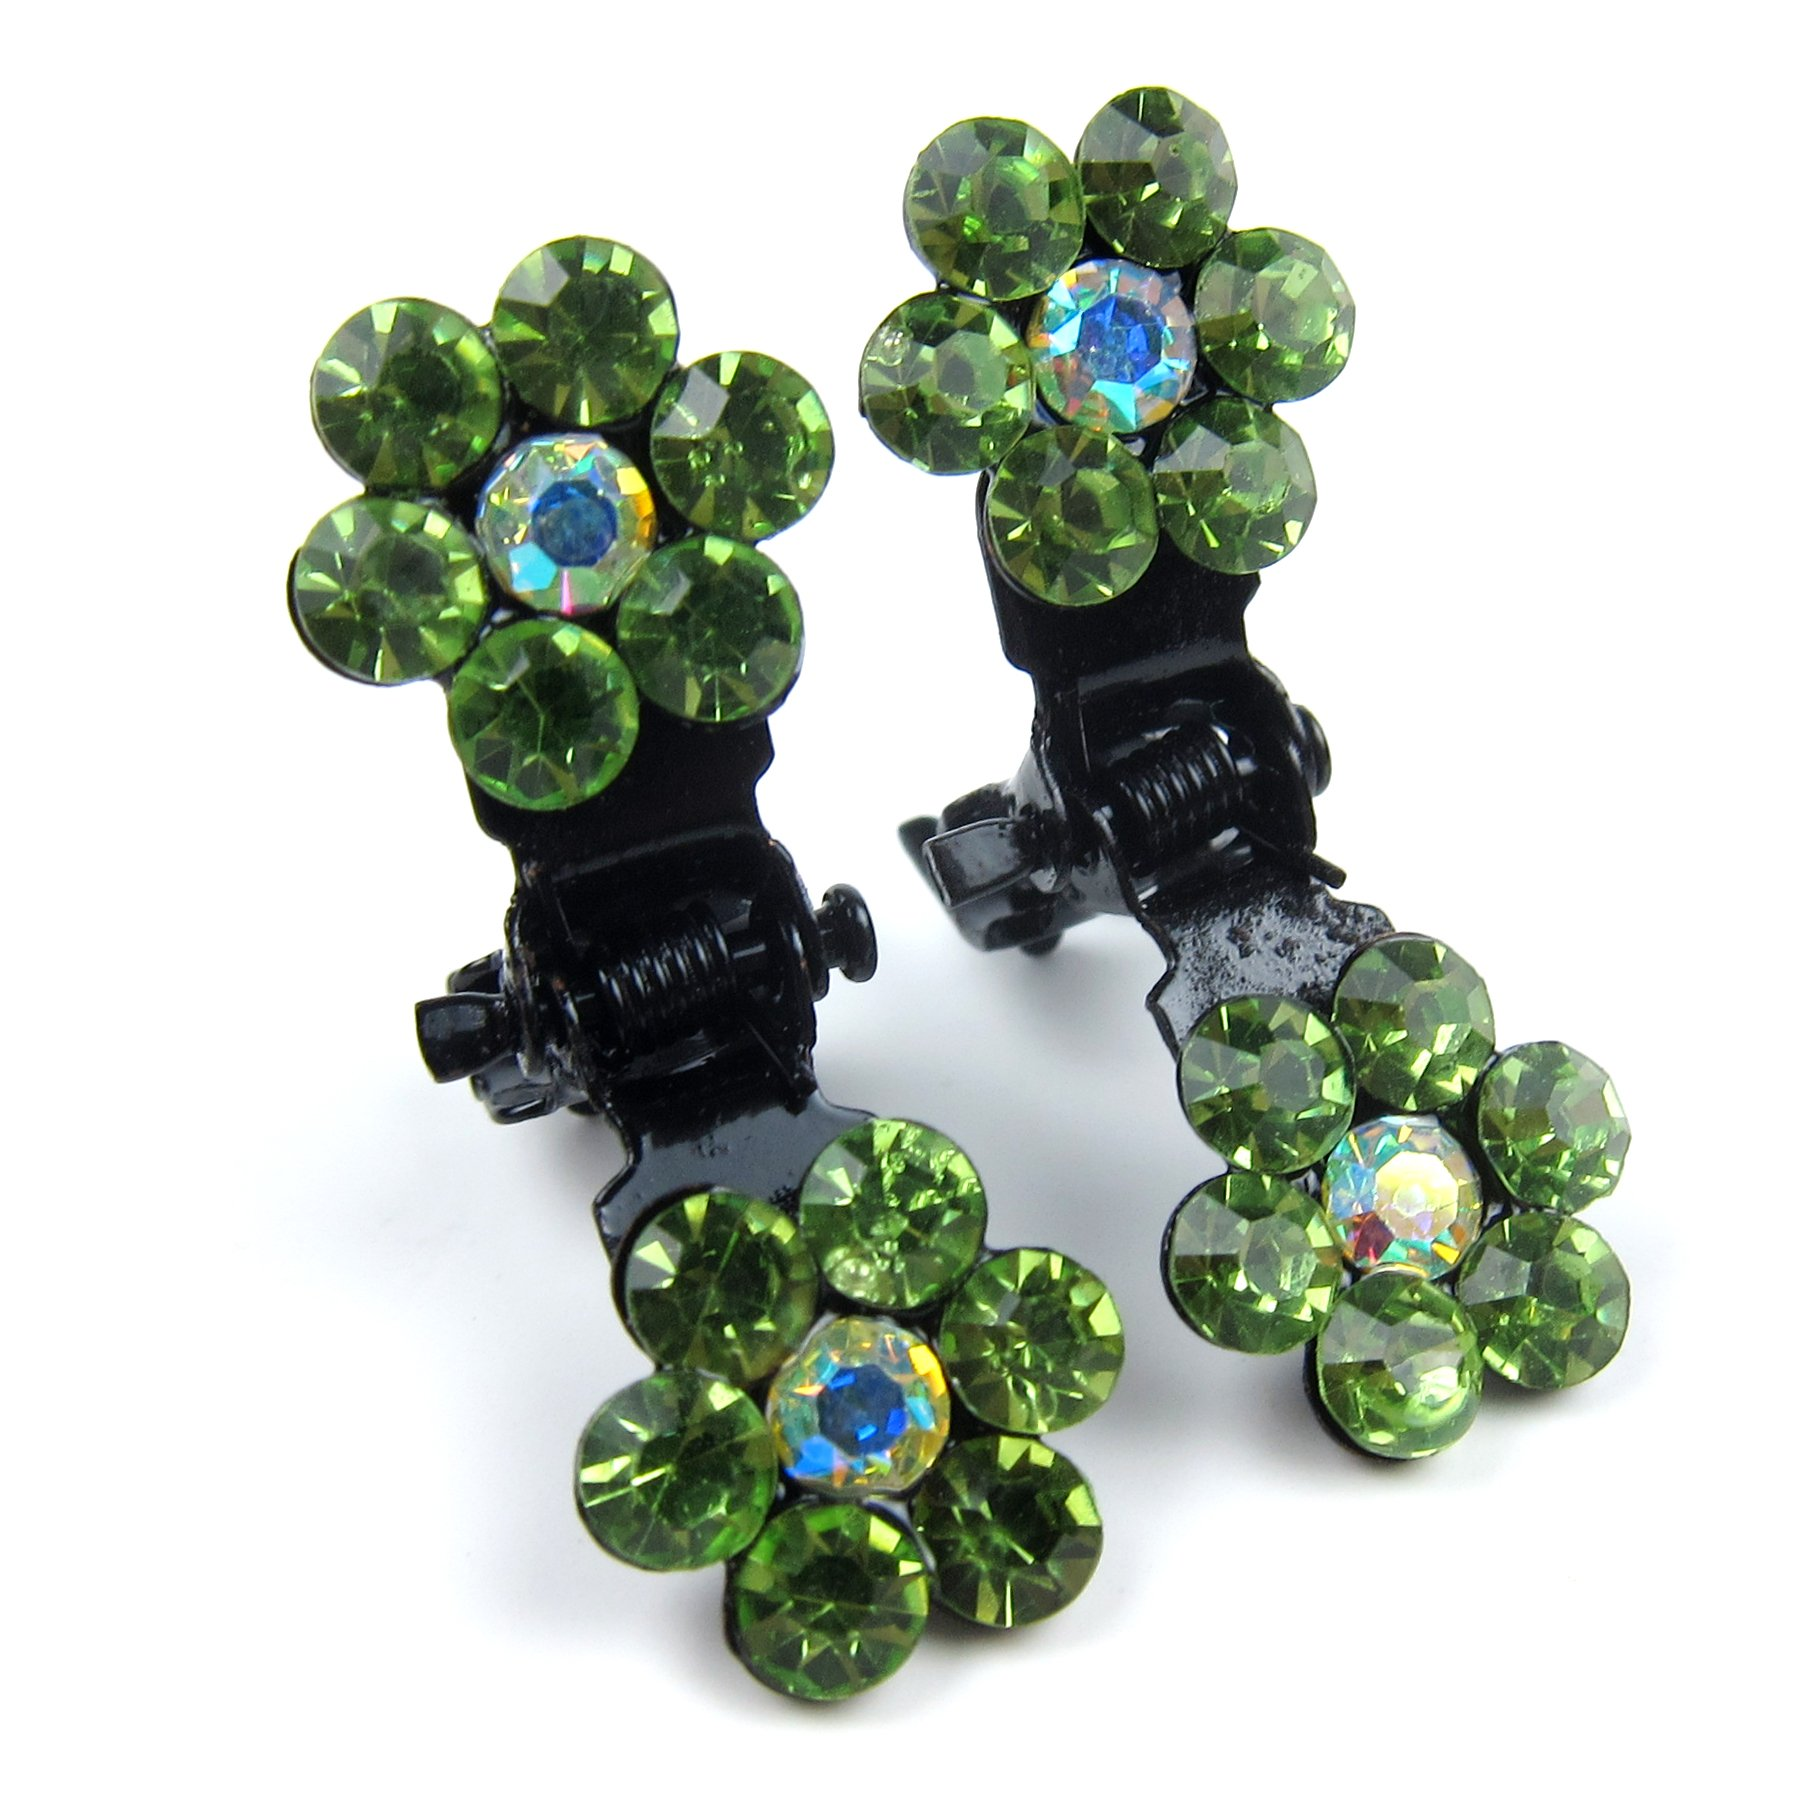 Alfie Pet by Petoga Couture - Dasie Rhinestone Flower Hair Clip 20-Piece Set for Dogs, Cats and Small Animals by Alfie (Image #8)